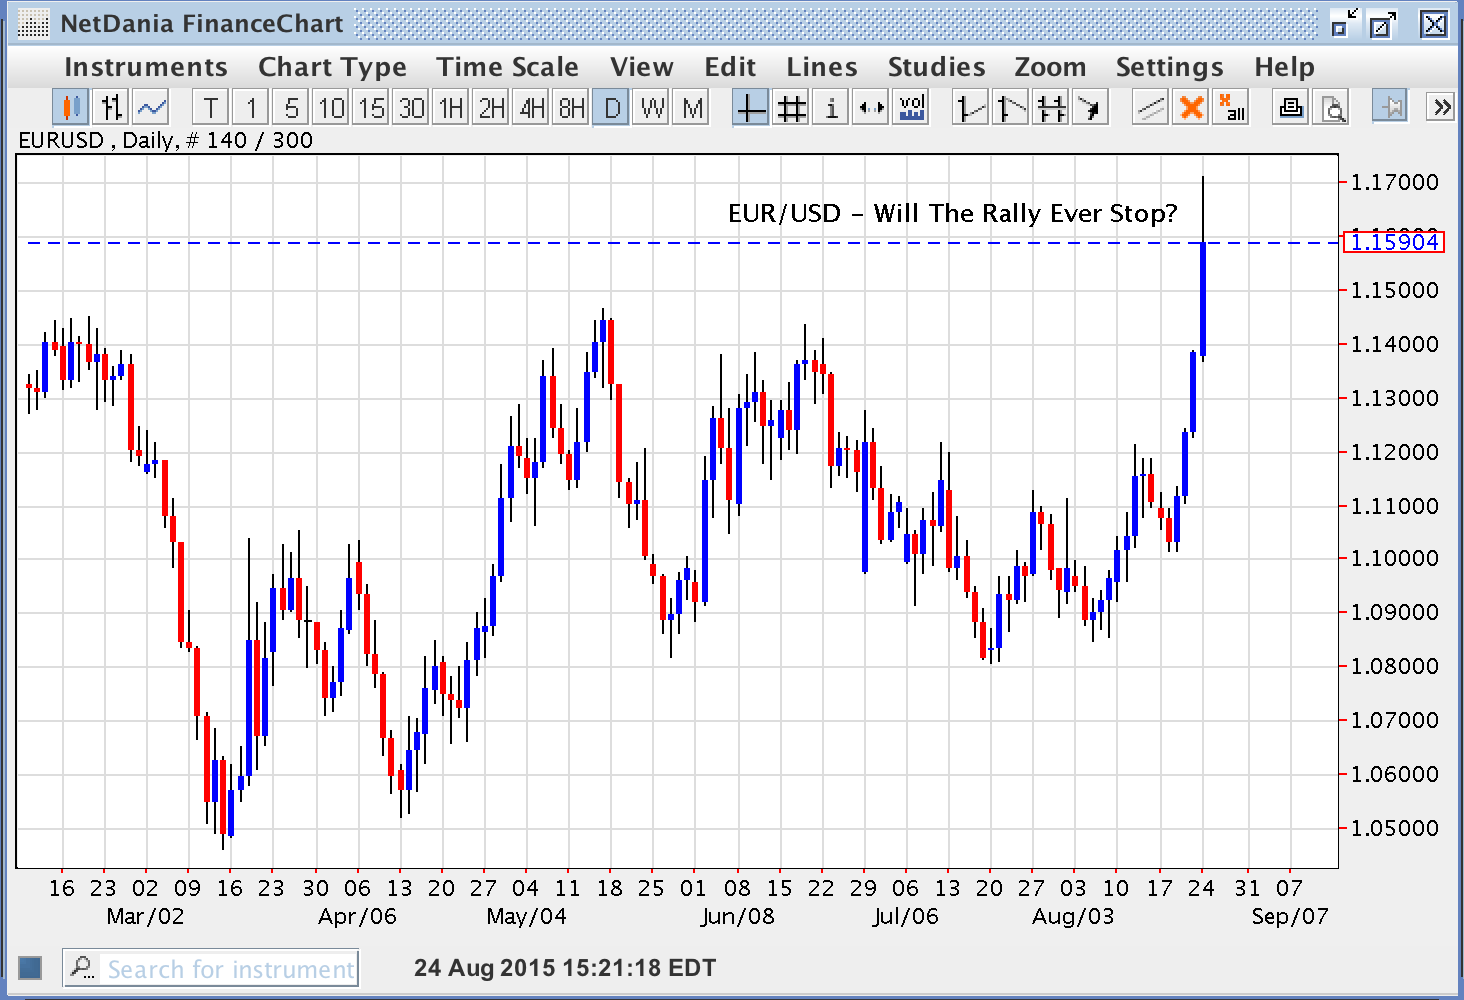 EUR/USD – Will The Rally Ever Stop?